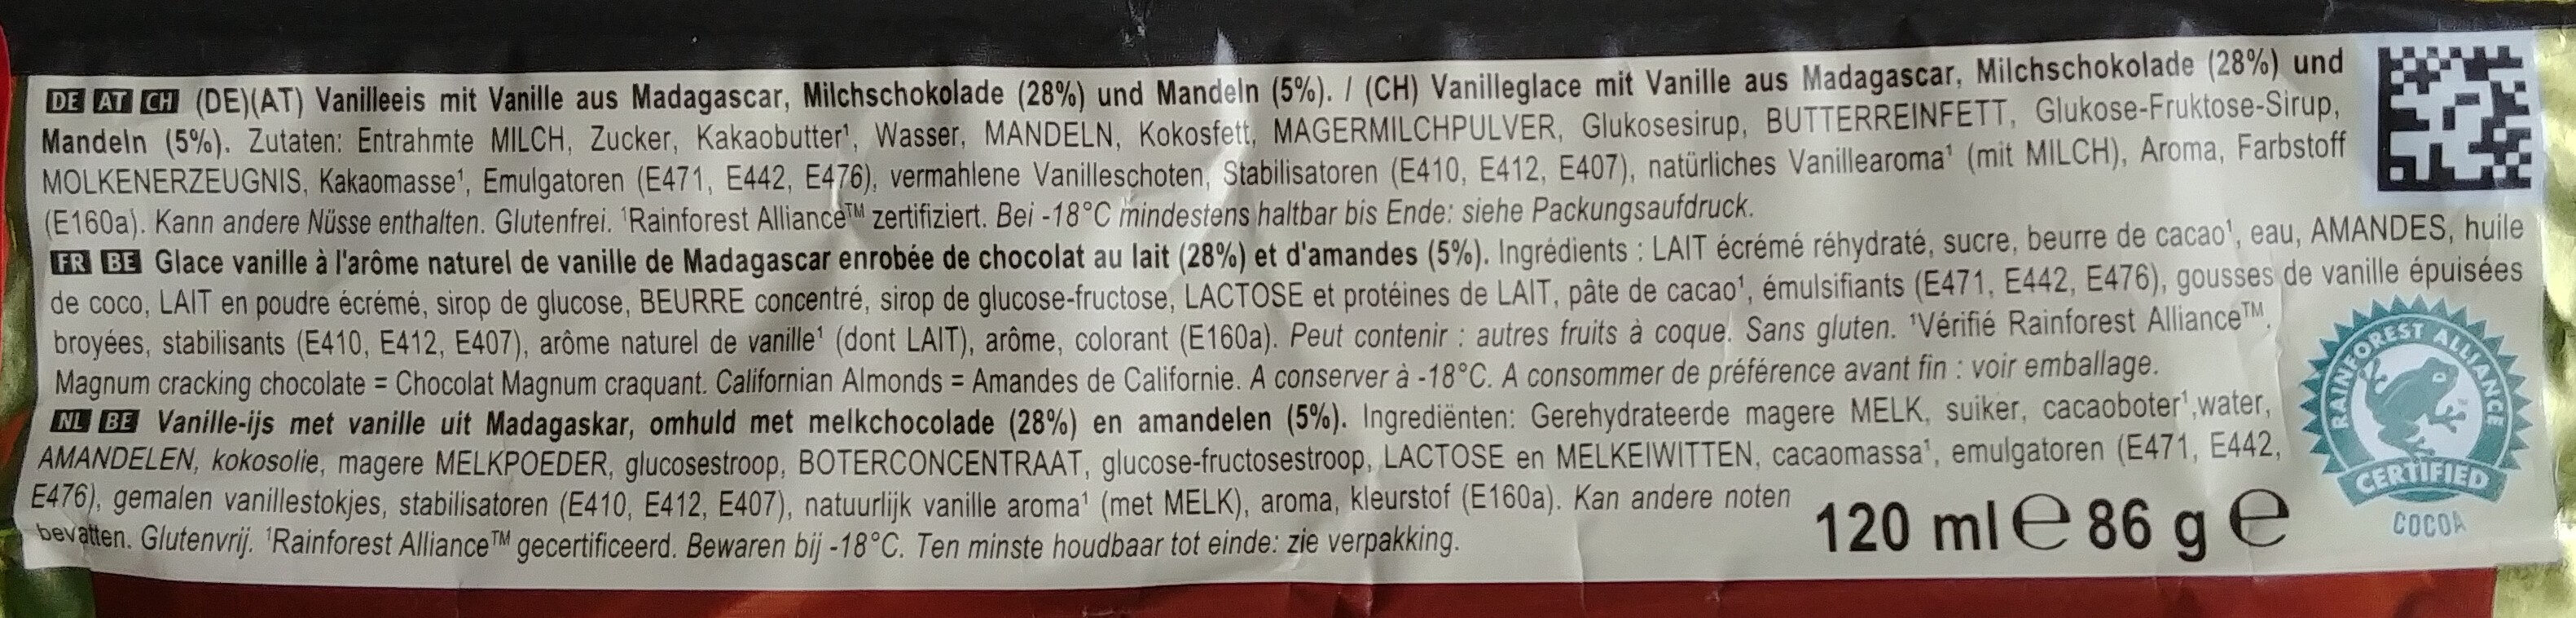 Magnum Almond - Ingredients - de